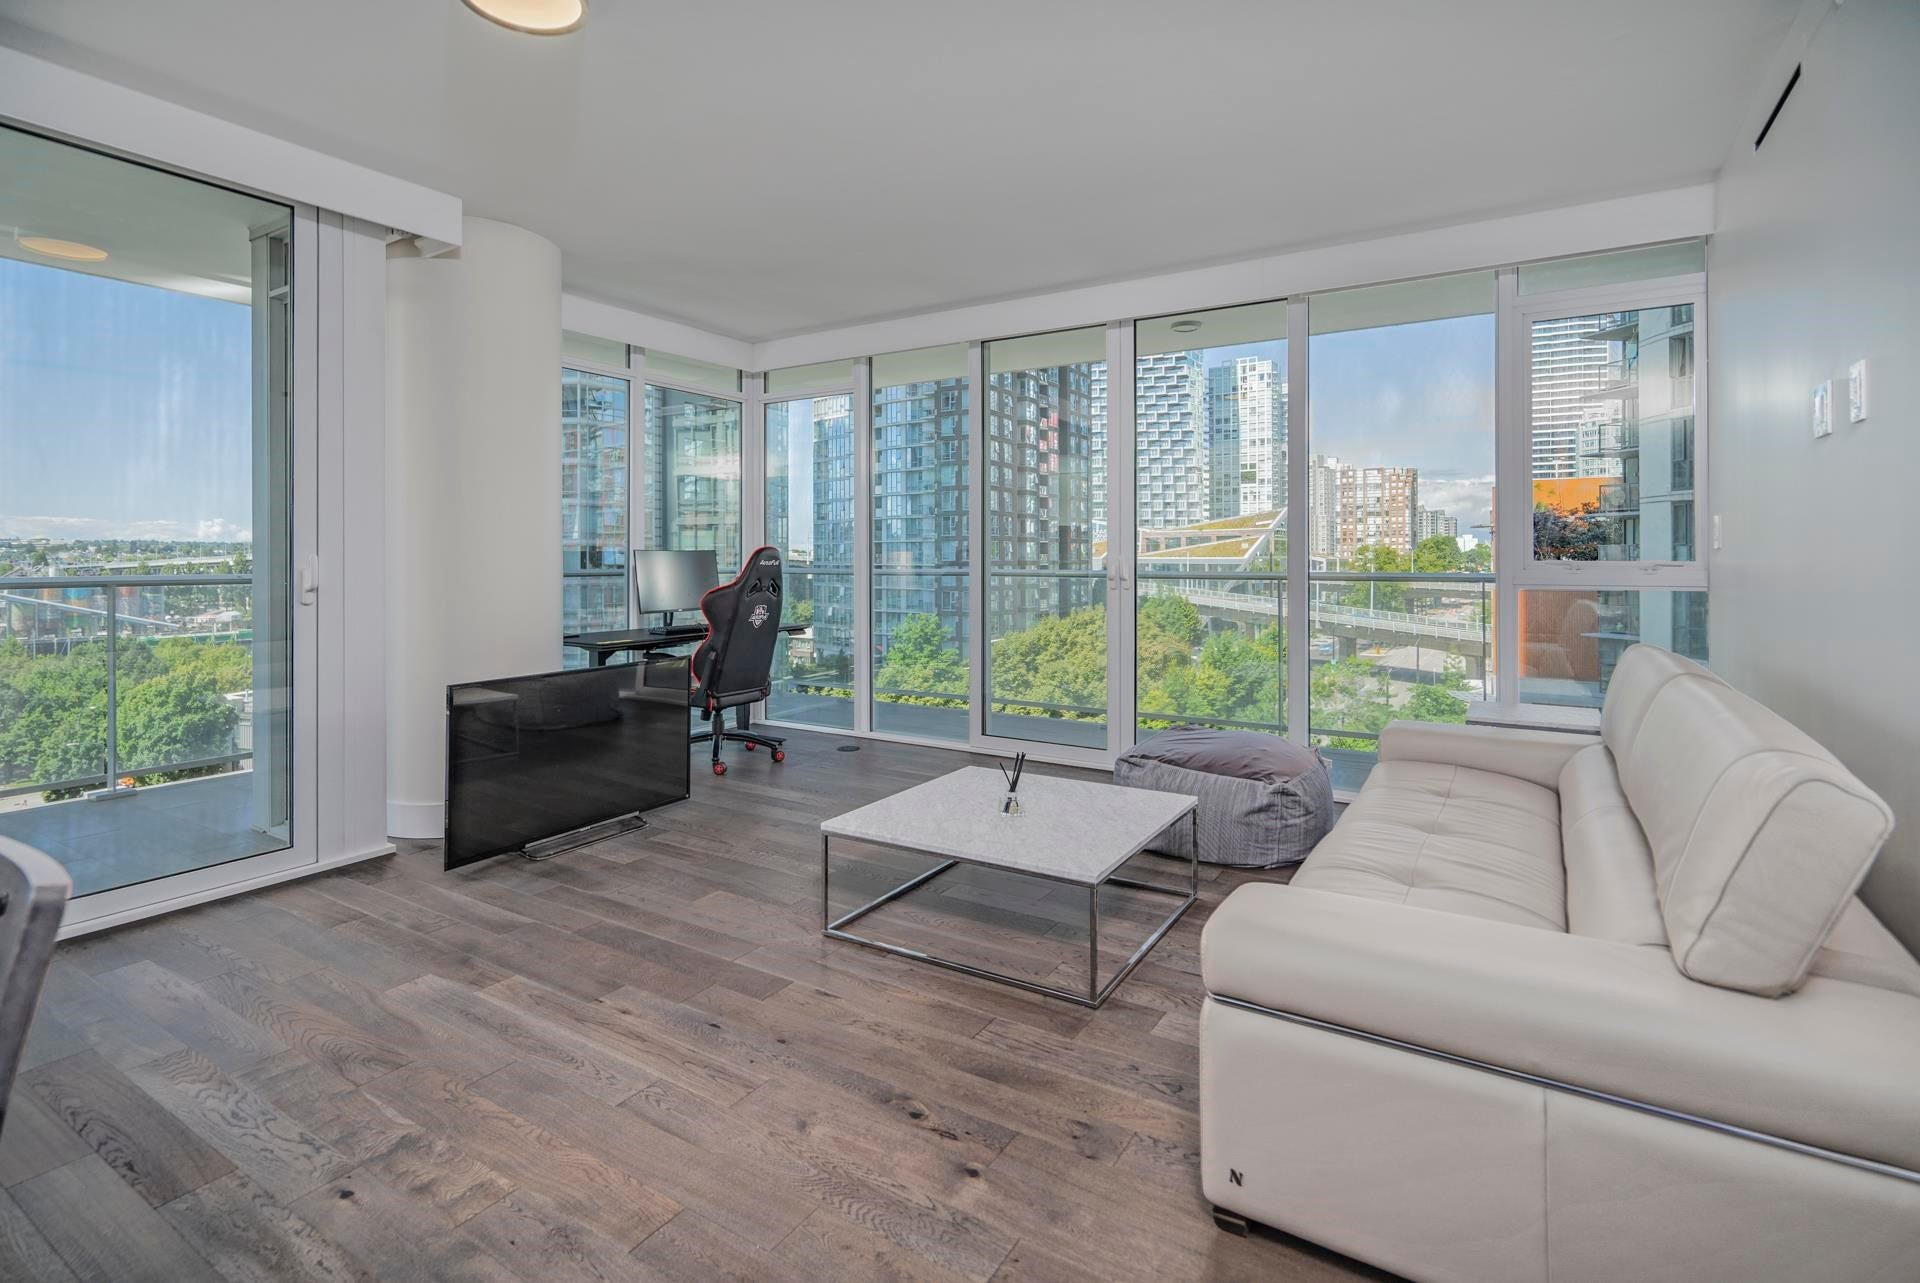 801 499 PACIFIC STREET - Yaletown Apartment/Condo for sale, 2 Bedrooms (R2605271) - #1